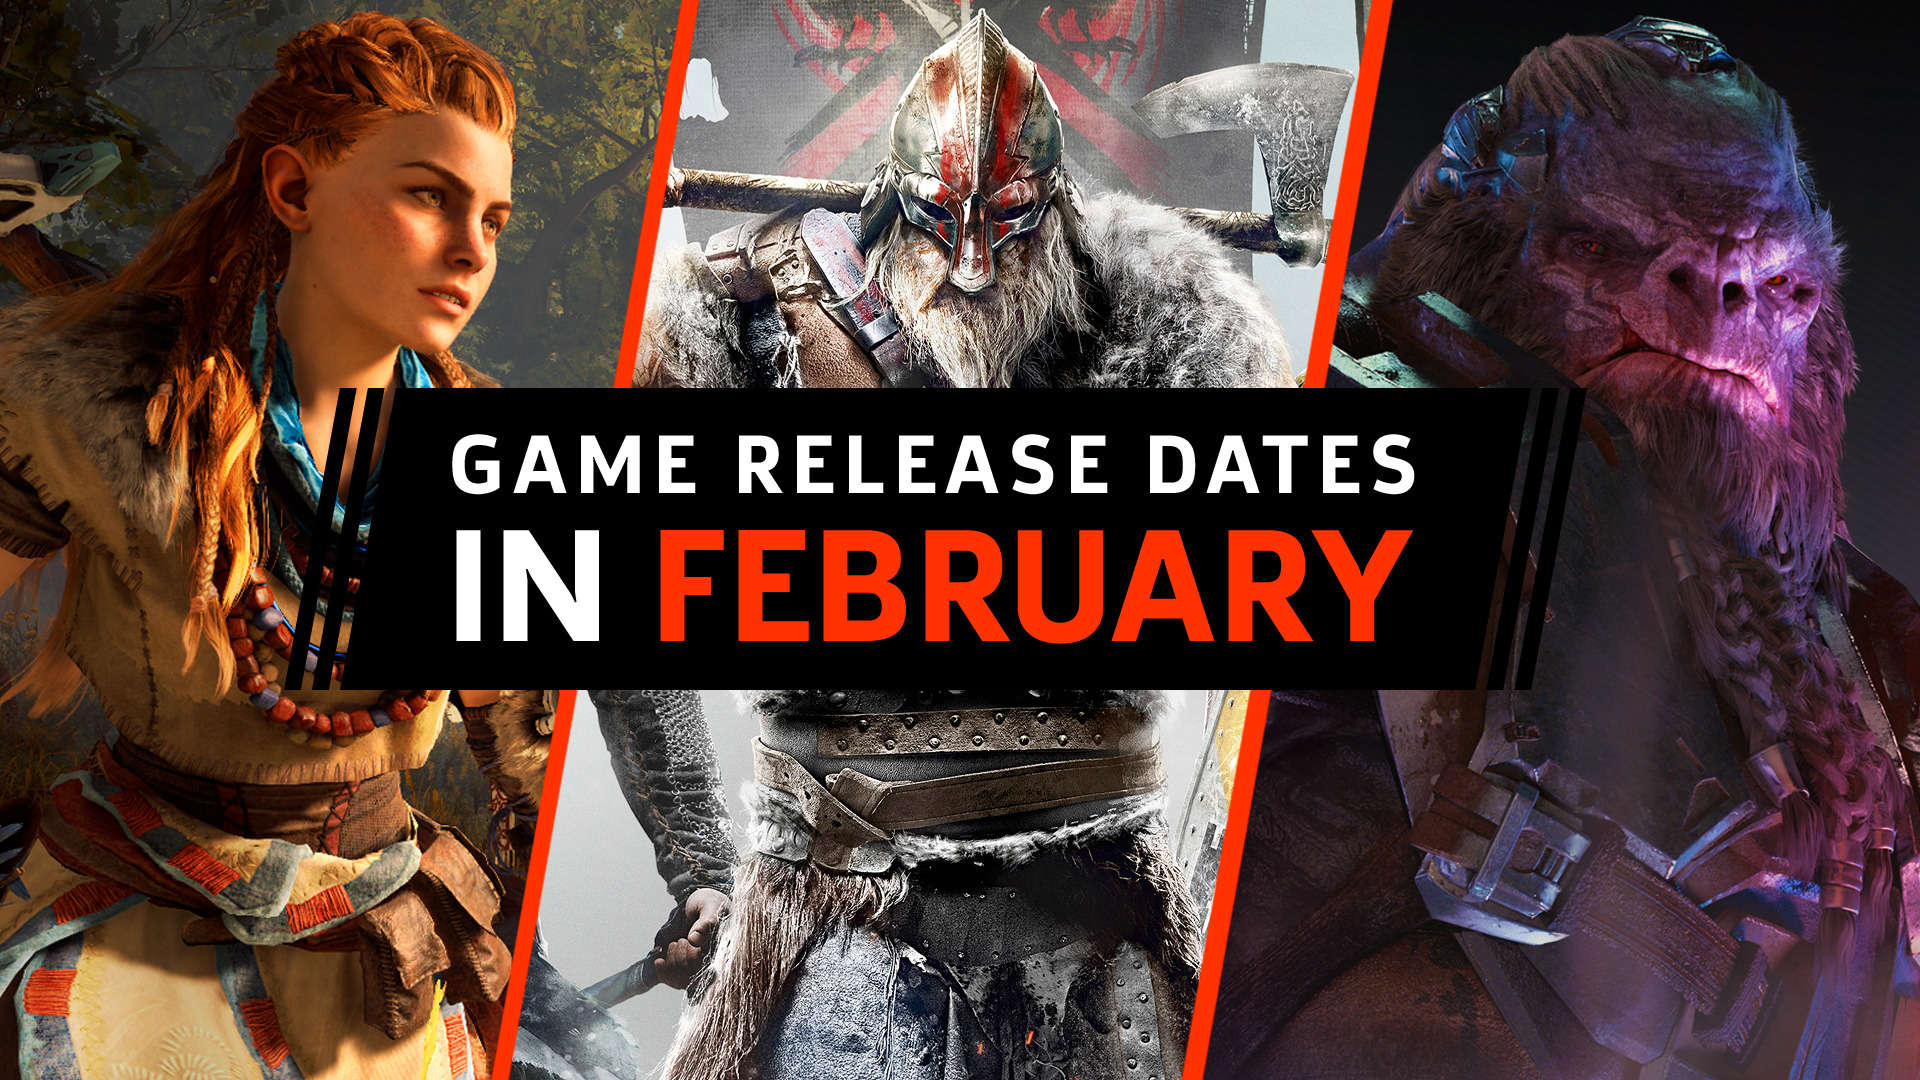 New Ps3 Game Release List : Horizon zero dawn and for honor game release dates in